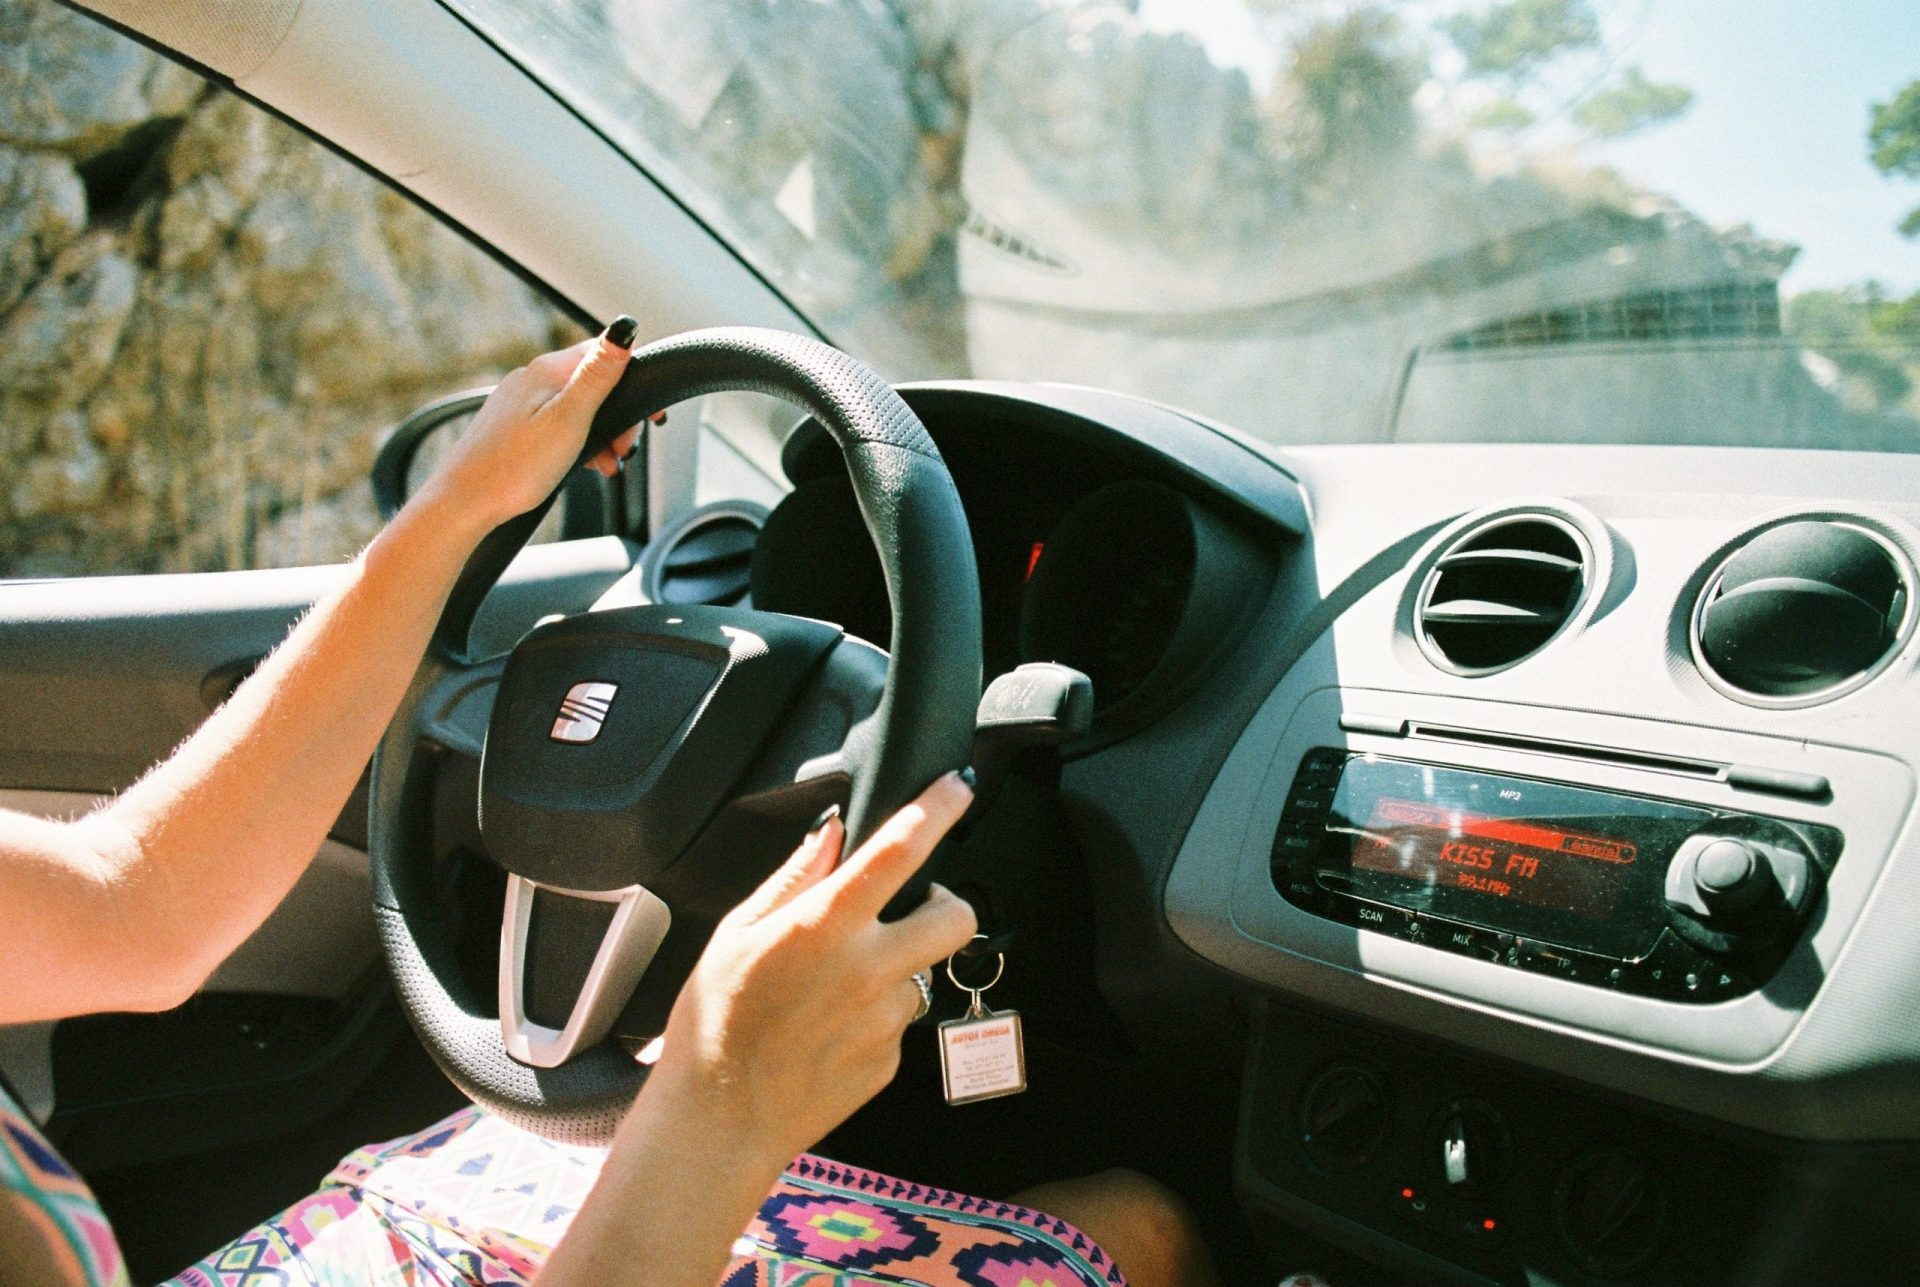 SELF-DRIVE Act Could Become Framework for Self-Driving Car Laws